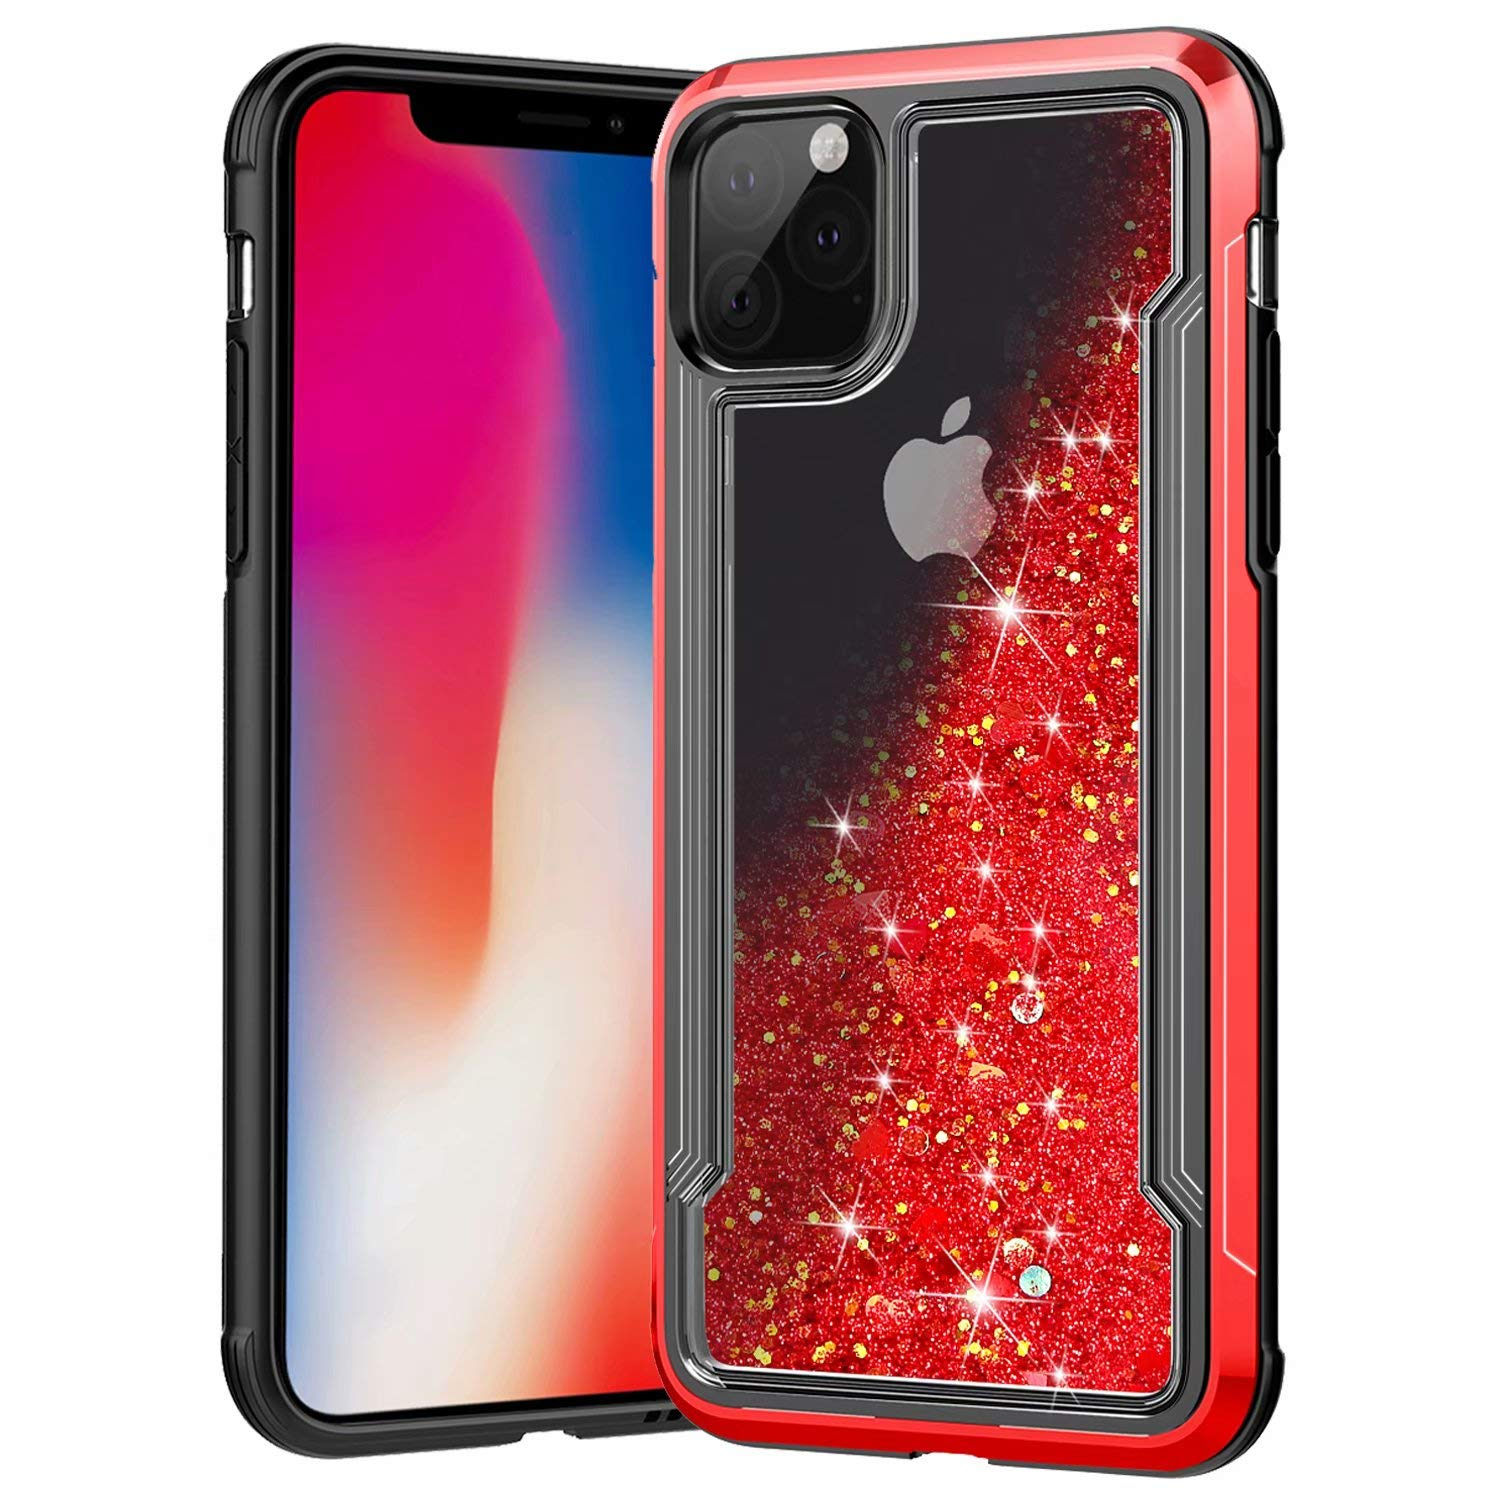 iPhone 11 Pro Max Case, Ranyi Slim Protective Liquid Glitter Case Flowing Liquid Floating Glitter Quicksand Resilient Rubber Electroplated Bumper Case for 2019 6.5 Inch iPhone 11 Pro Max (red) by Ranyi